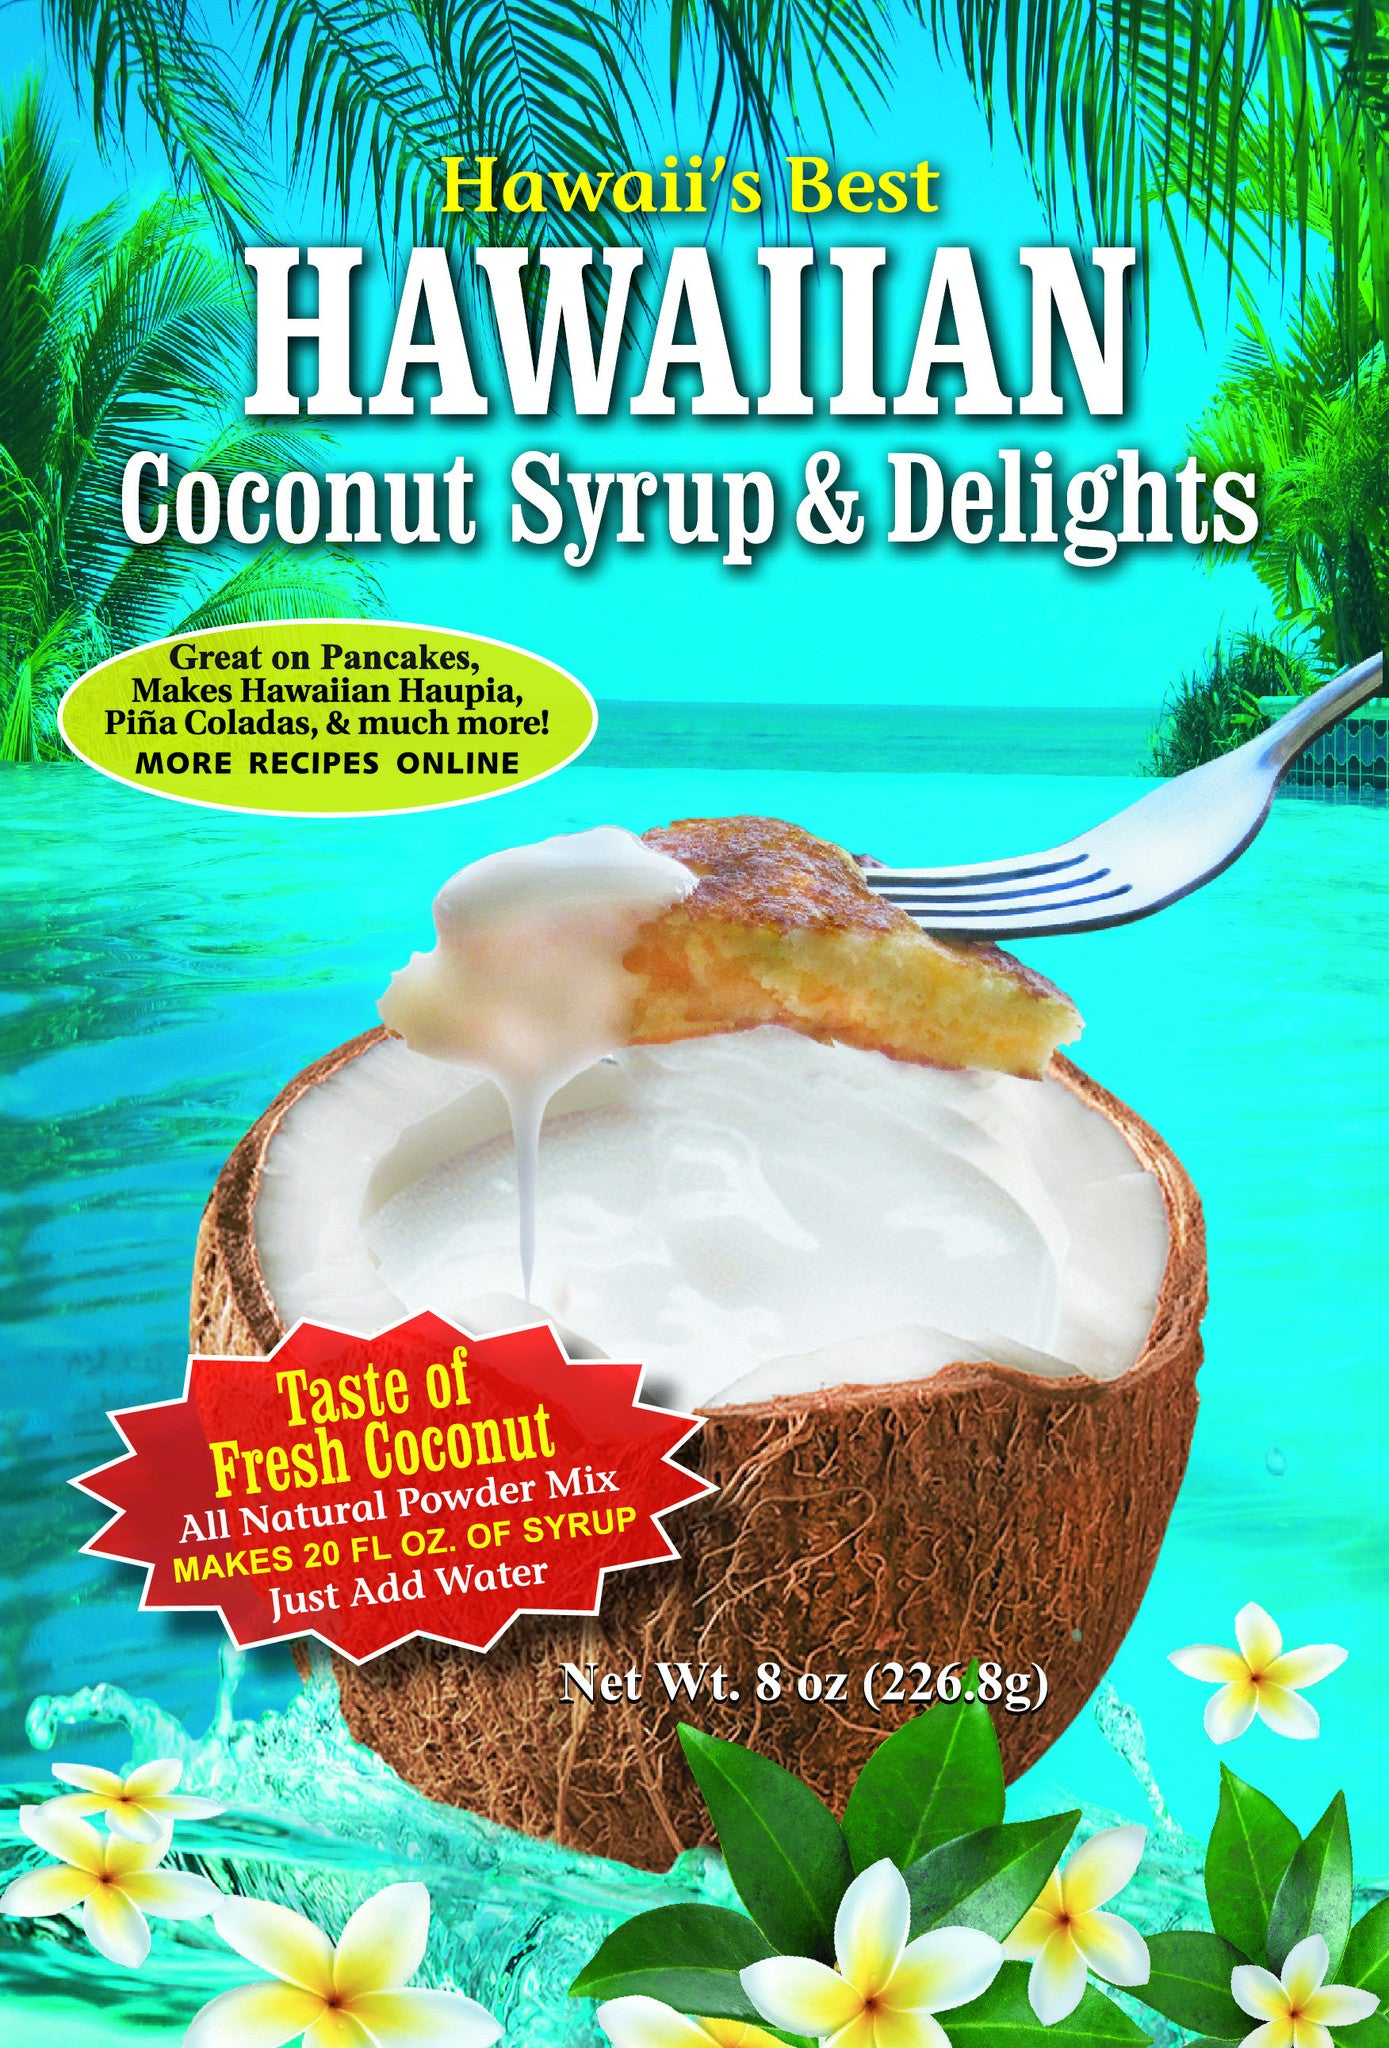 (3 BAGS - EXTRA VALUE, $6.99 EACH) COCONUT CREAM SYRUP MIX  (8 oz package)